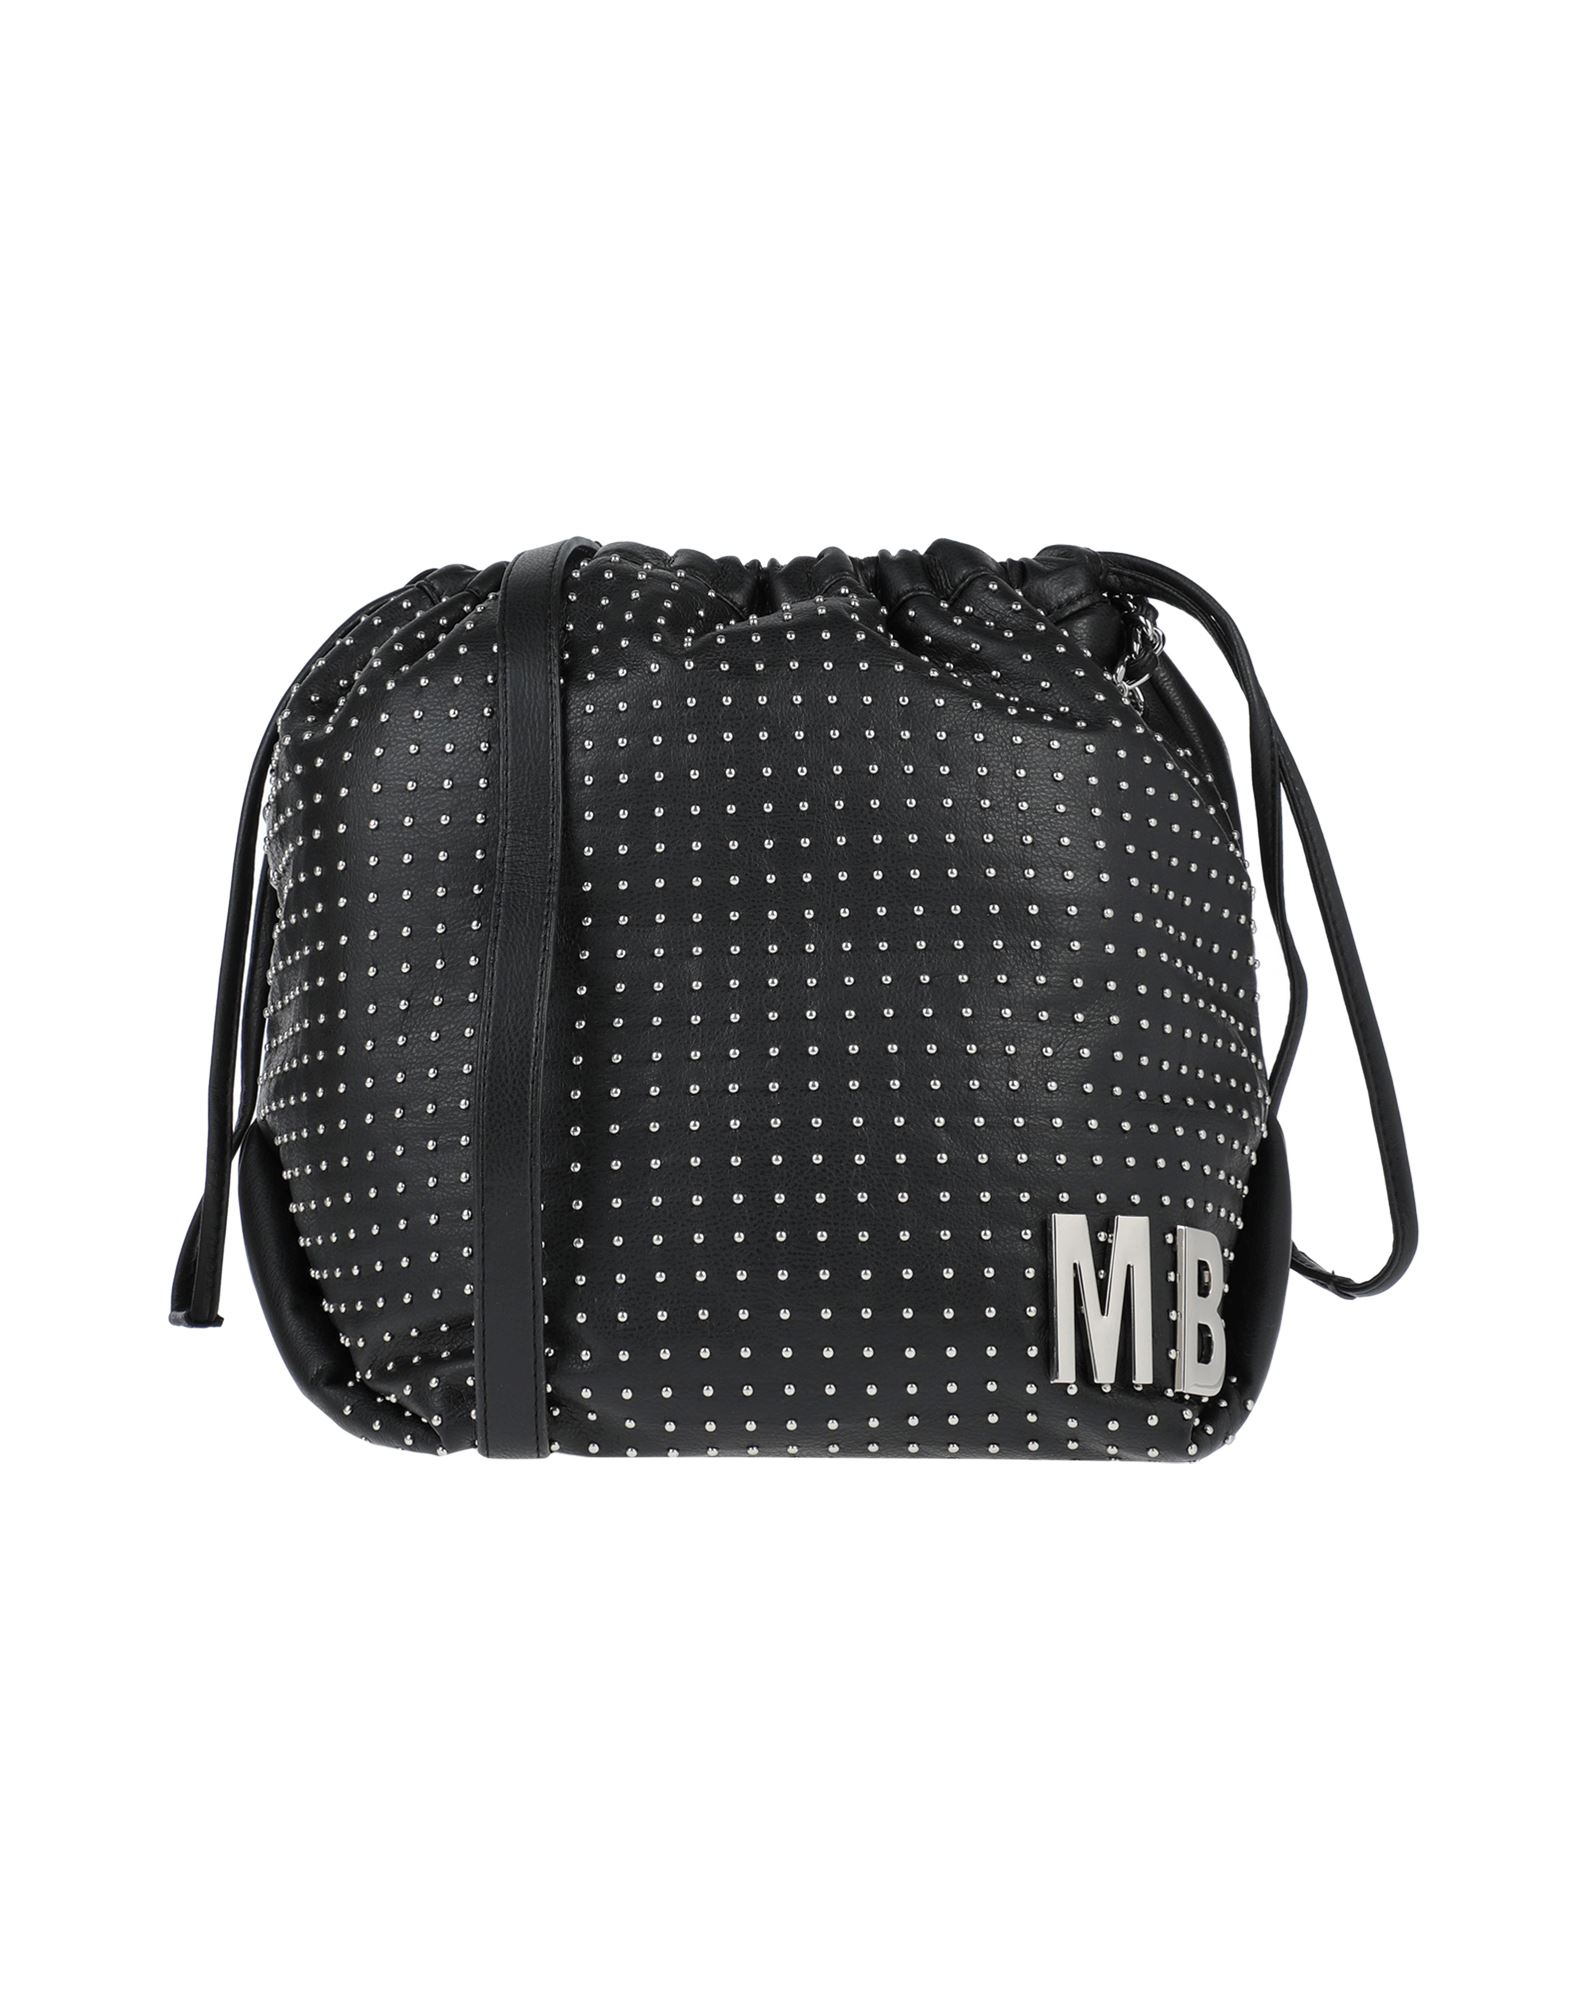 MIA BAG Cross-body bags - Item 45554279